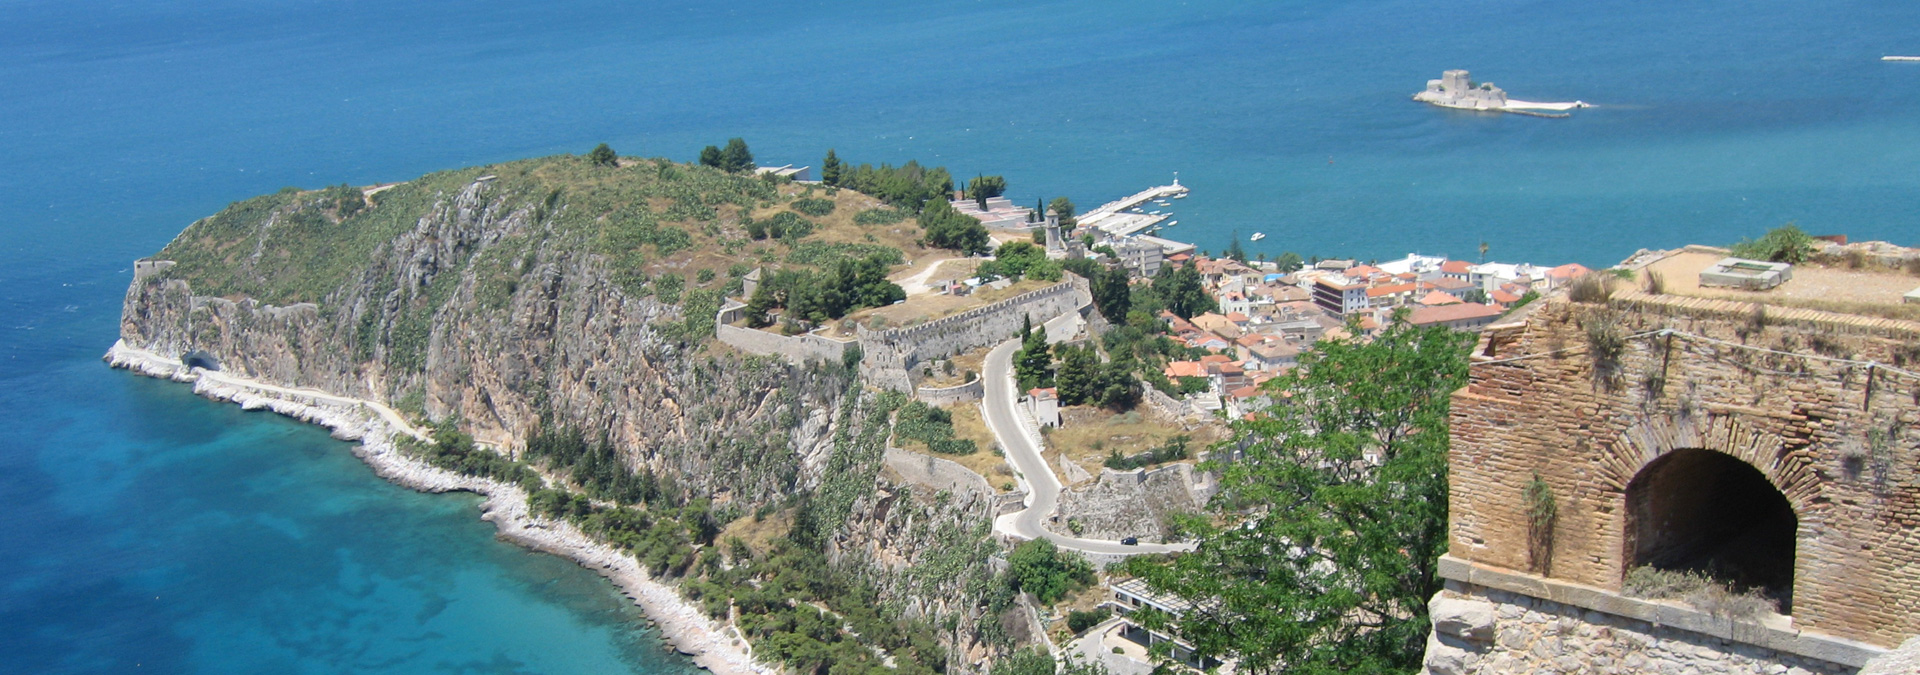 Nafplion view from Palamidi